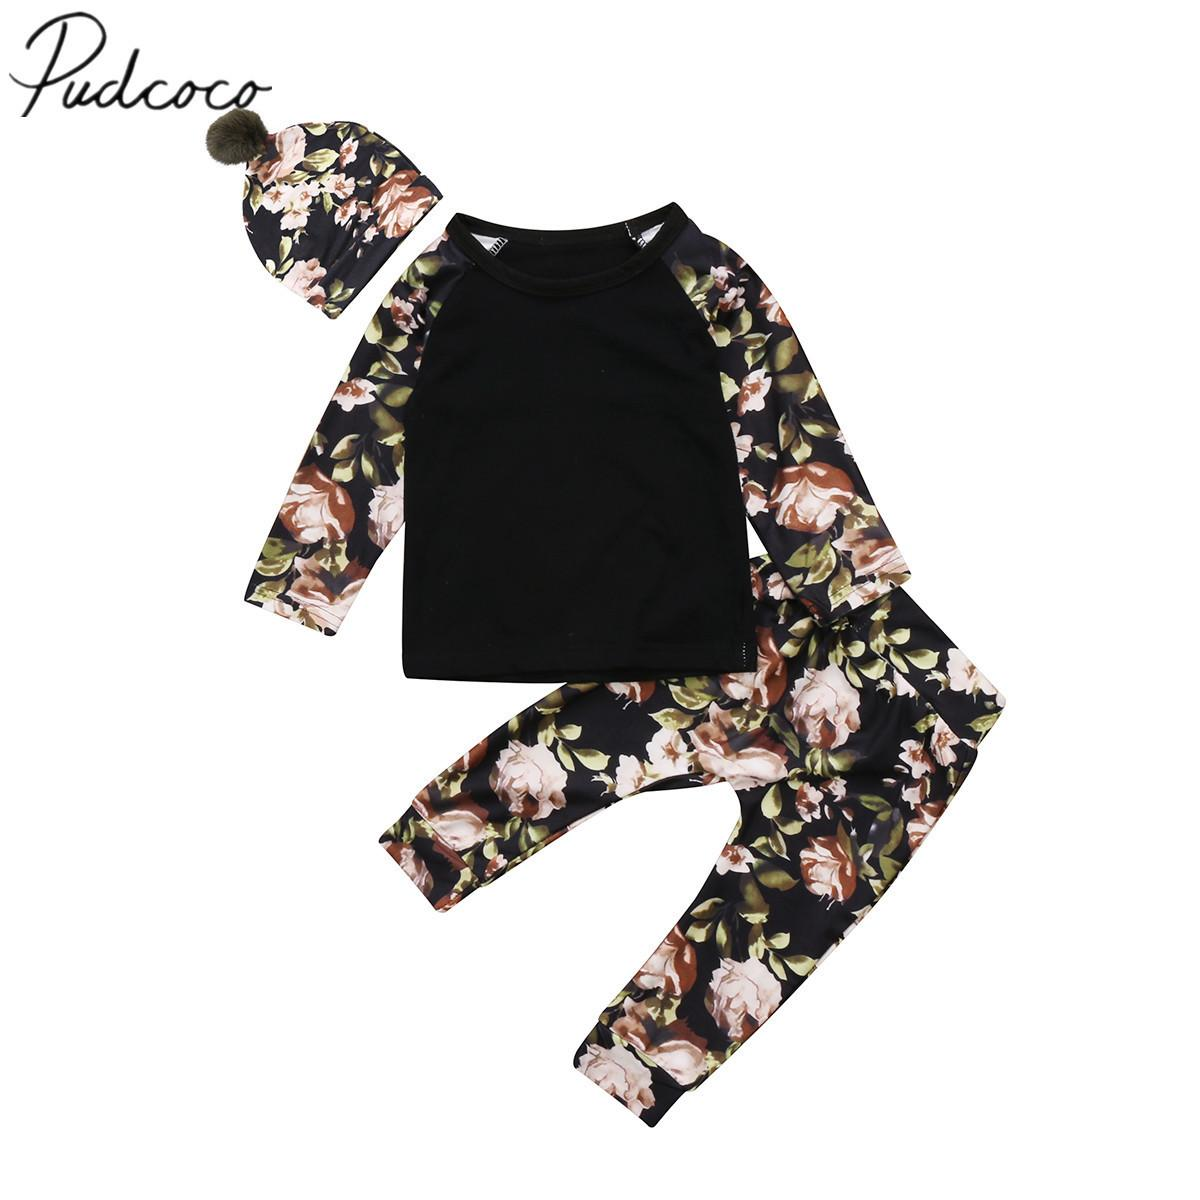 2017 Brand New Newborn Toddler Infant Baby Girls Floral Clothes Tops Long Sleeve T Shirts Pants Pom Pom Hat 3Pcs Set Outfits Y190515